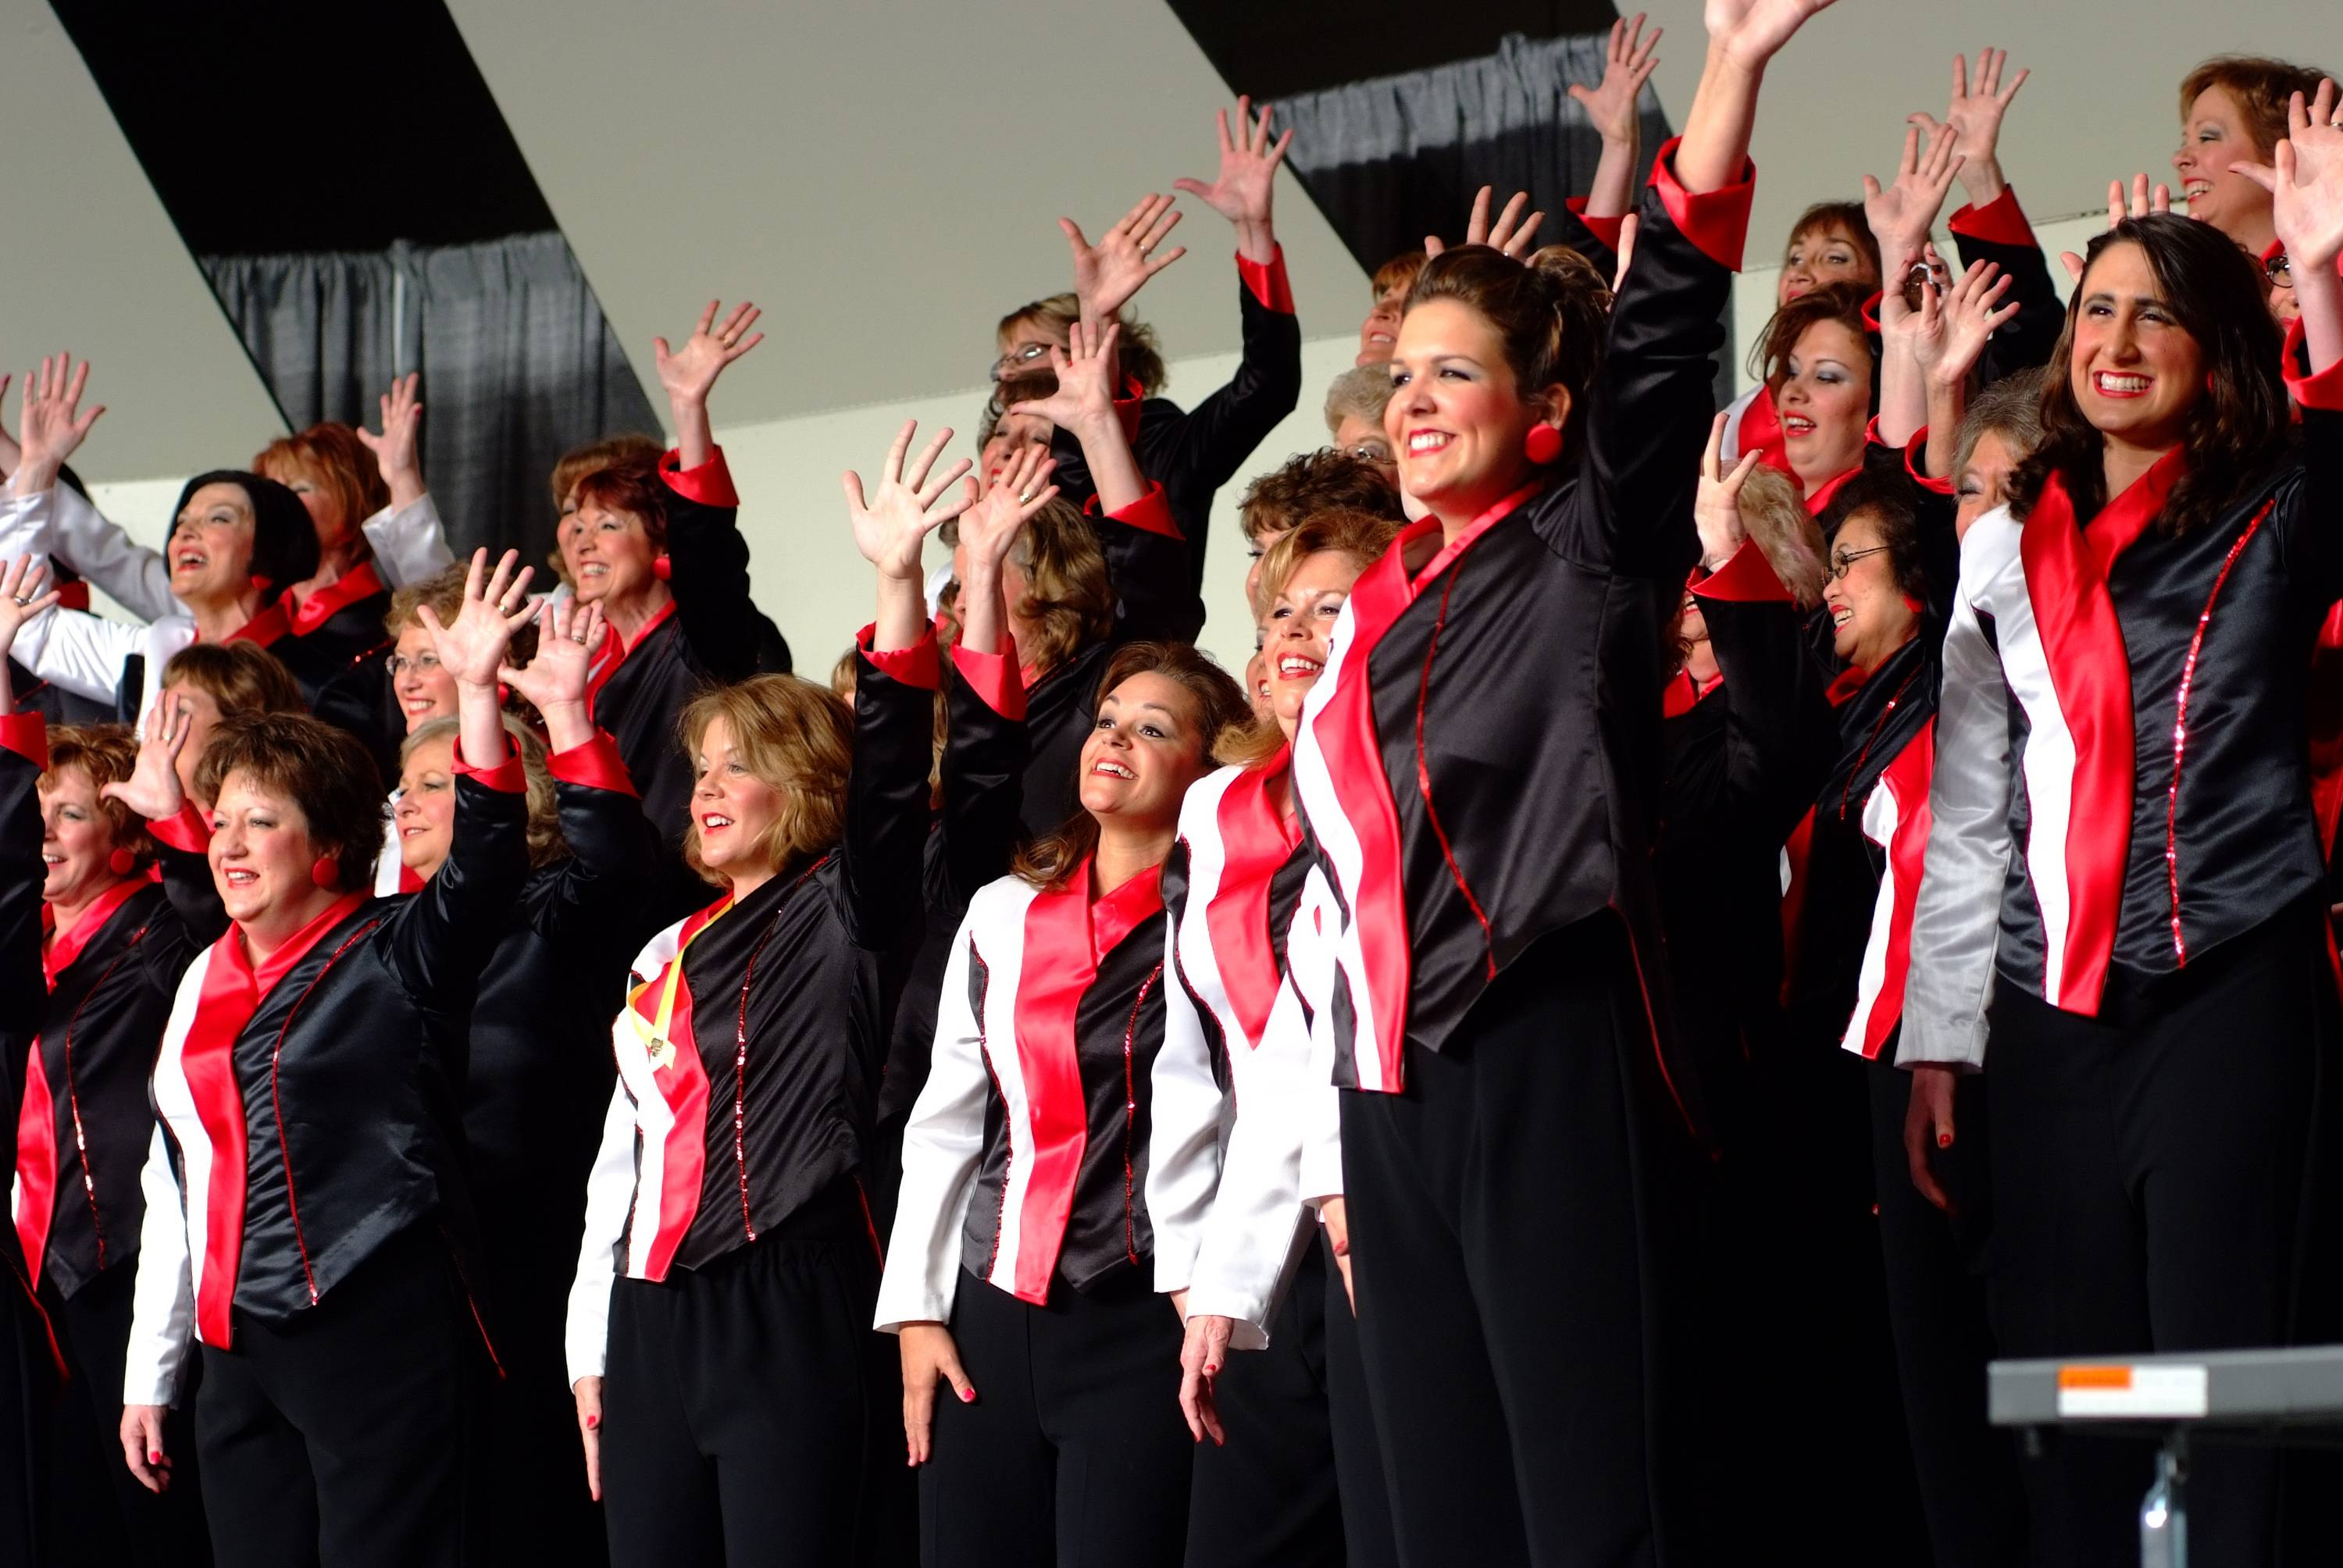 The Choral-Aires Chorus is headed to Hawaii to represent the region in the Sweet Adelines International competition.